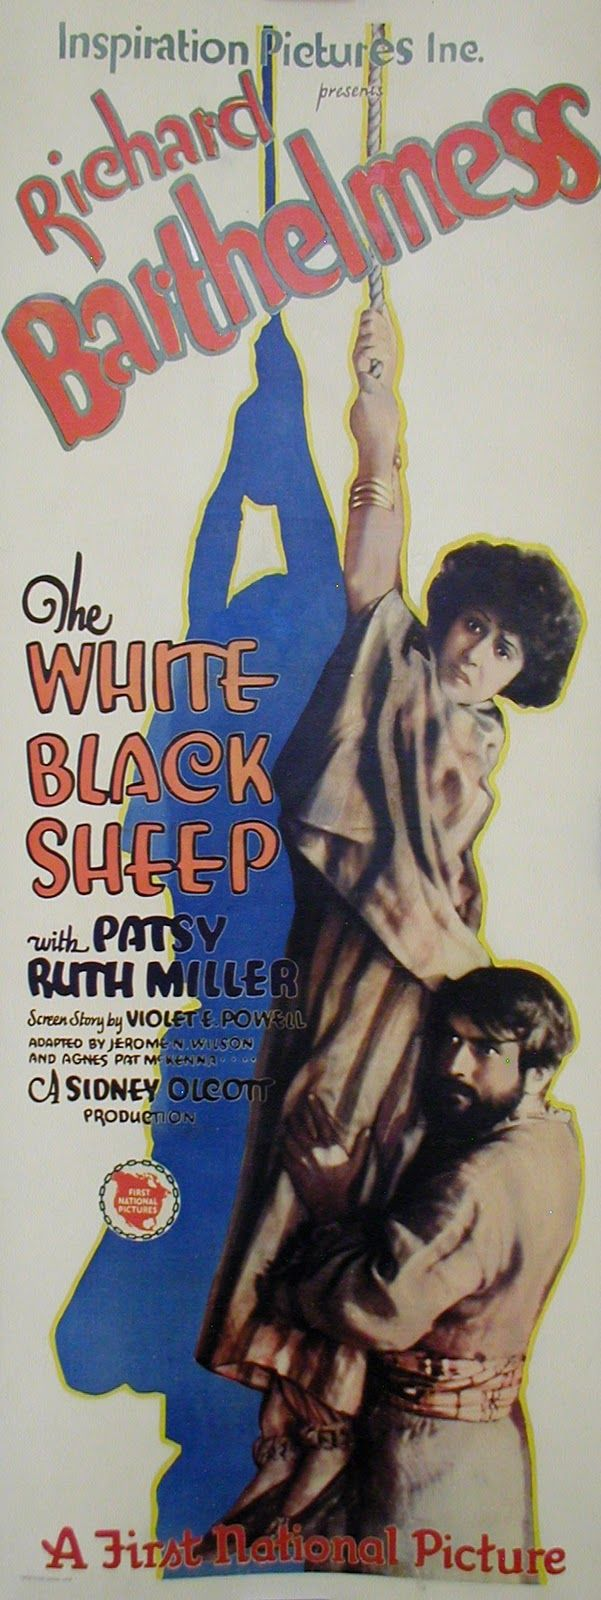 Download The White Black Sheep Full-Movie Free